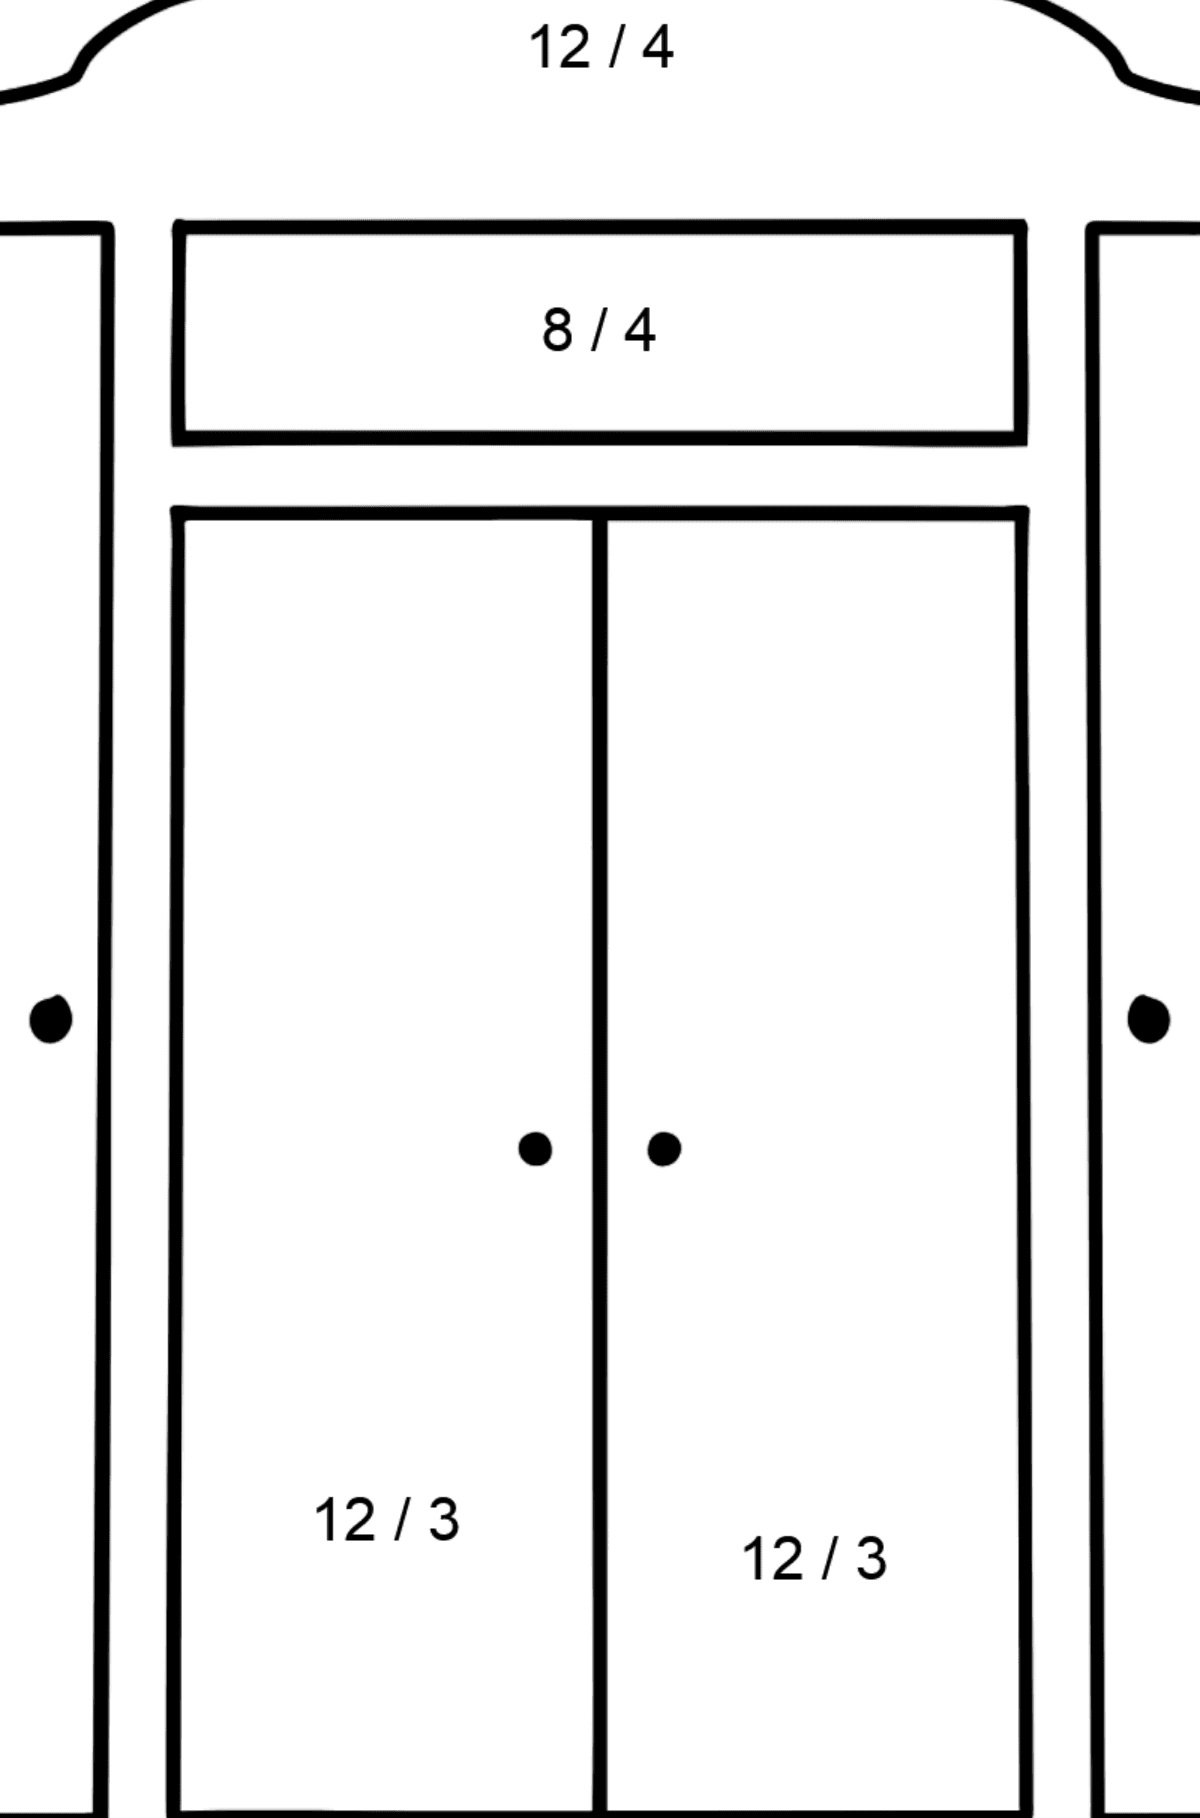 Wardrobe coloring page - Math Coloring - Division for Kids